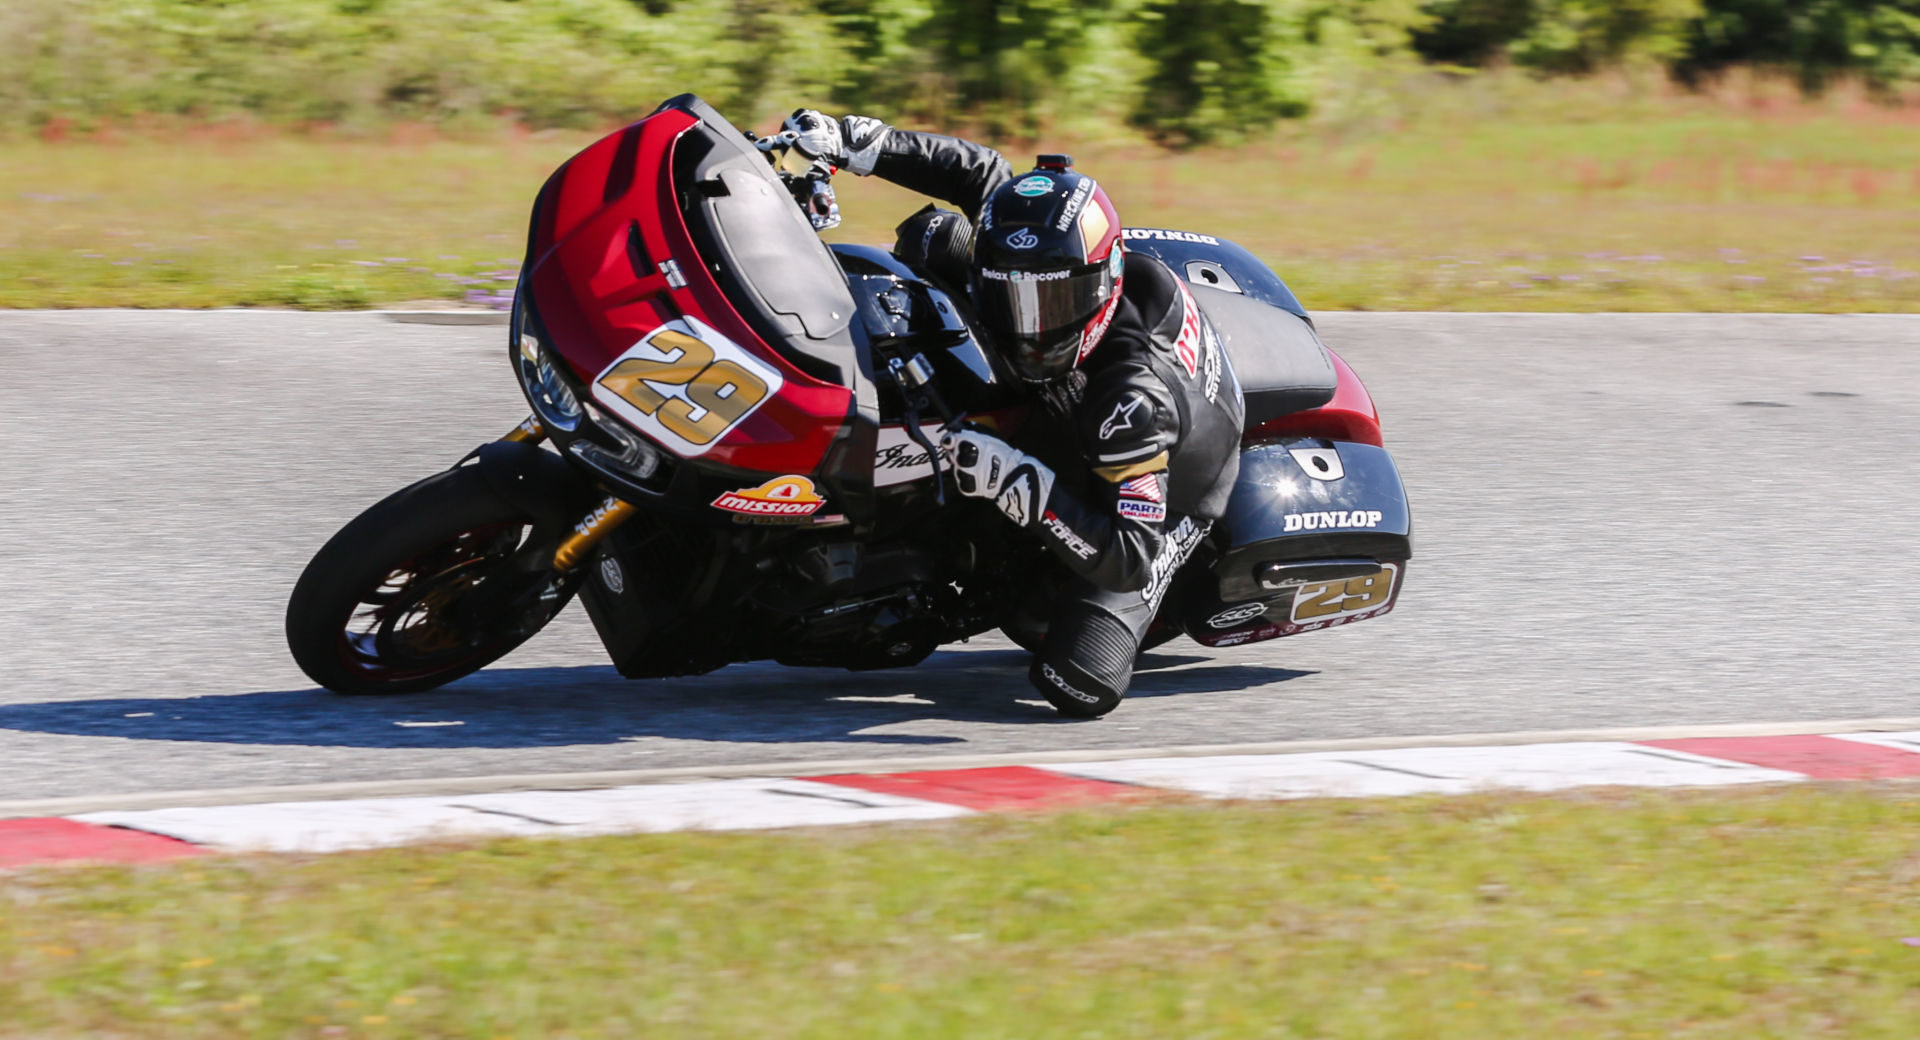 Tyler O'Hara (29) at speed on his Mission Foods S&S Indian Challenger. Photo courtesy Indian Motorcycle.